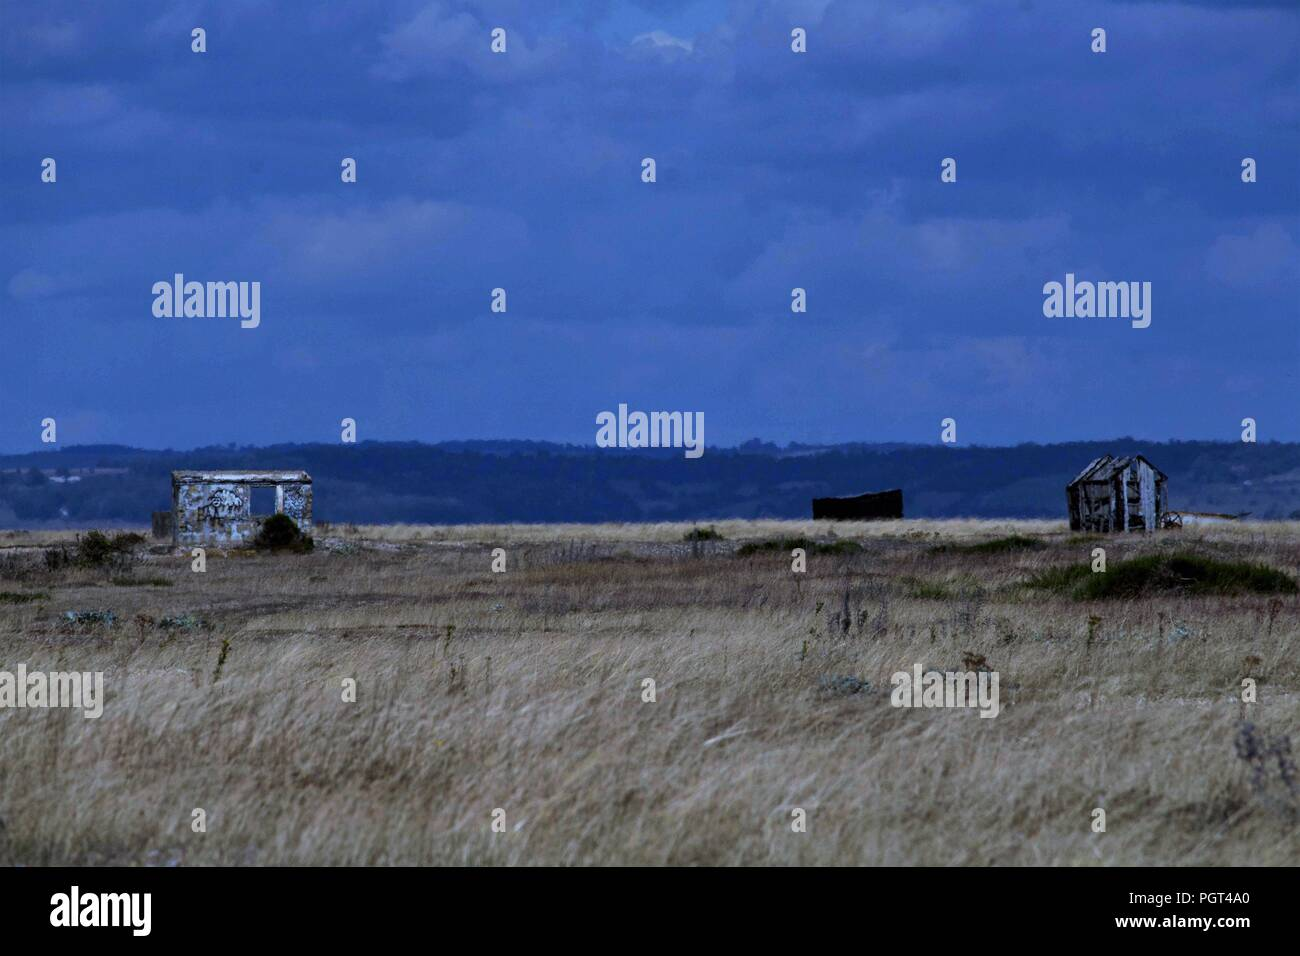 Travel & Tourism - Wild Locations - Go West Series. Remote isolation &  beauty in one of Britain's best Wild Places,Dungeness, UK. - Stock Image